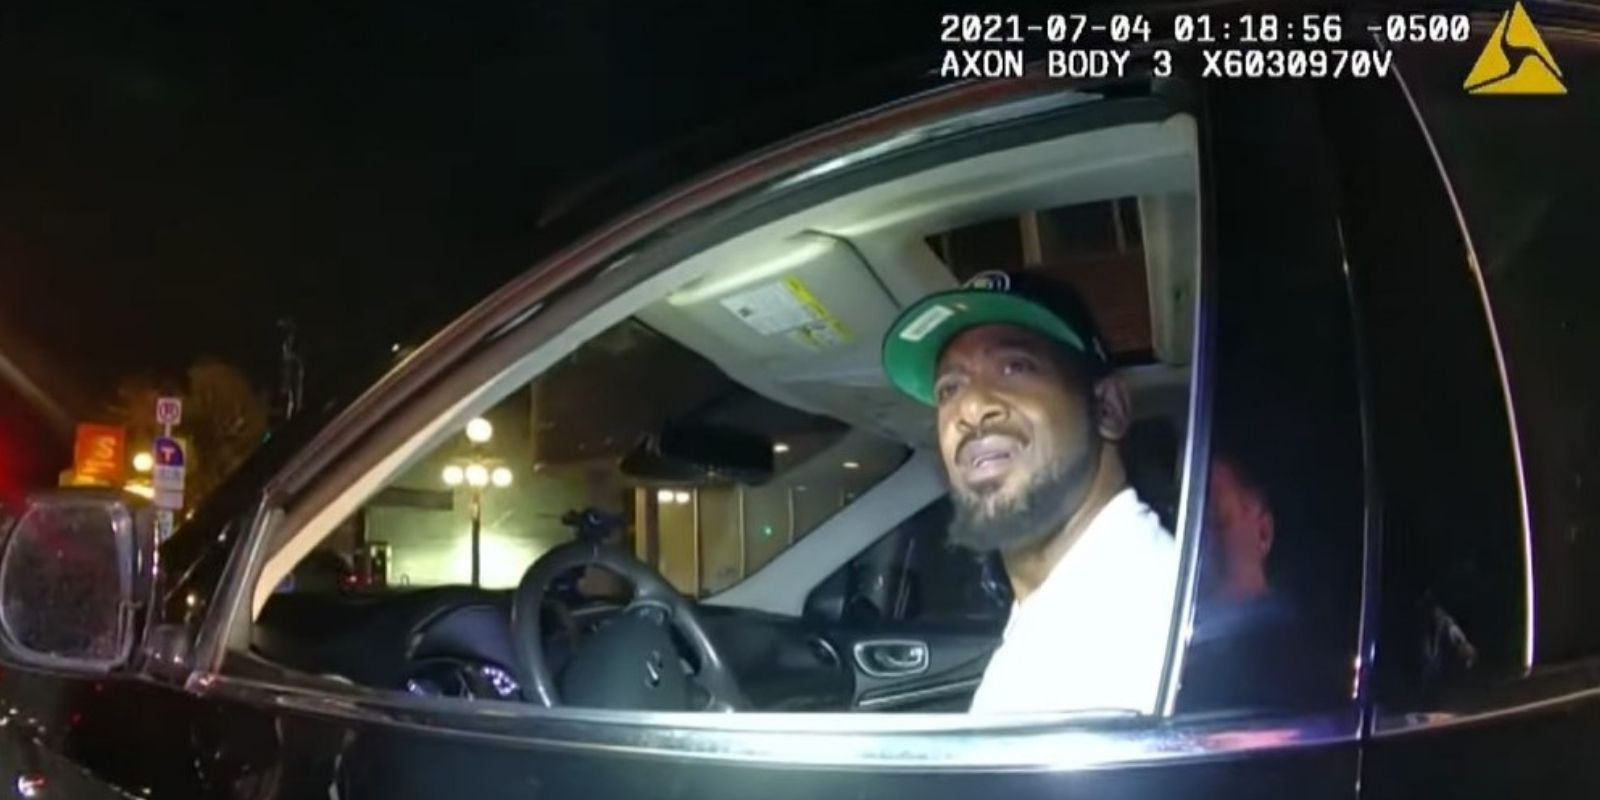 WATCH: Traffic stop footage released of Democrat state rep who falsely claimed he was ticketed for 'driving while black'